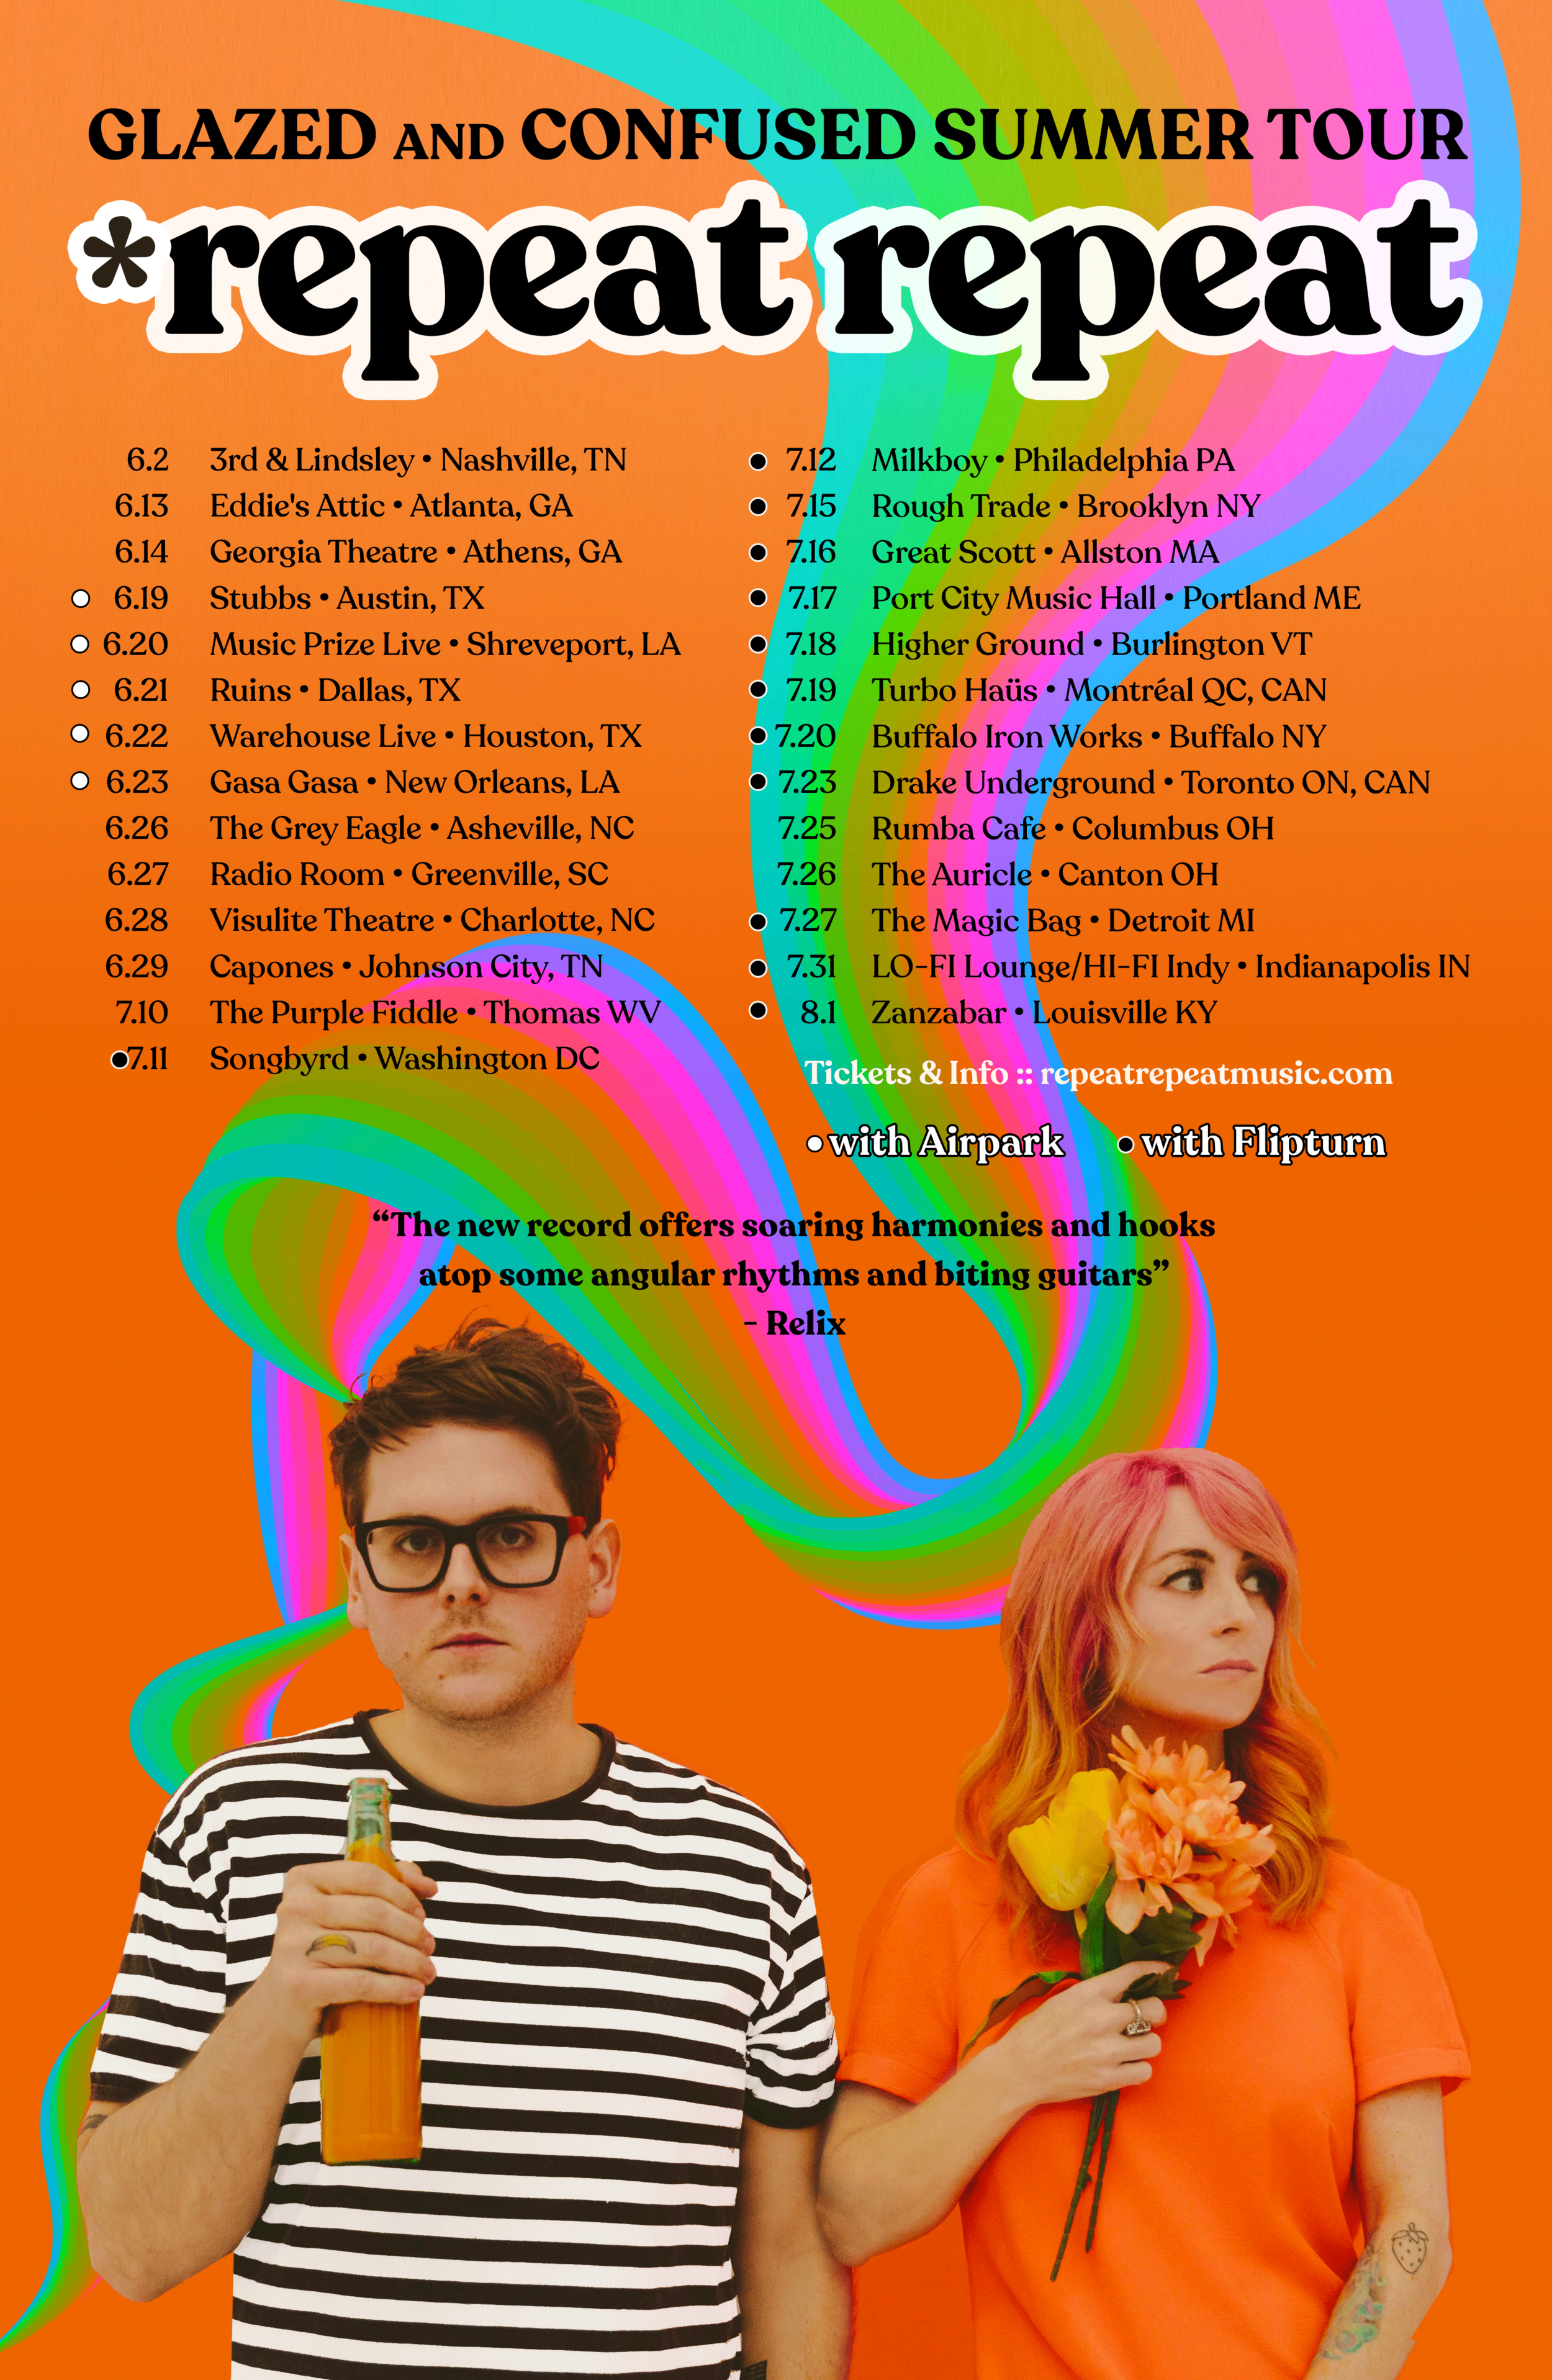 _rr-Glazed-and-Confused-Summer-Tour-poster_web.jpg